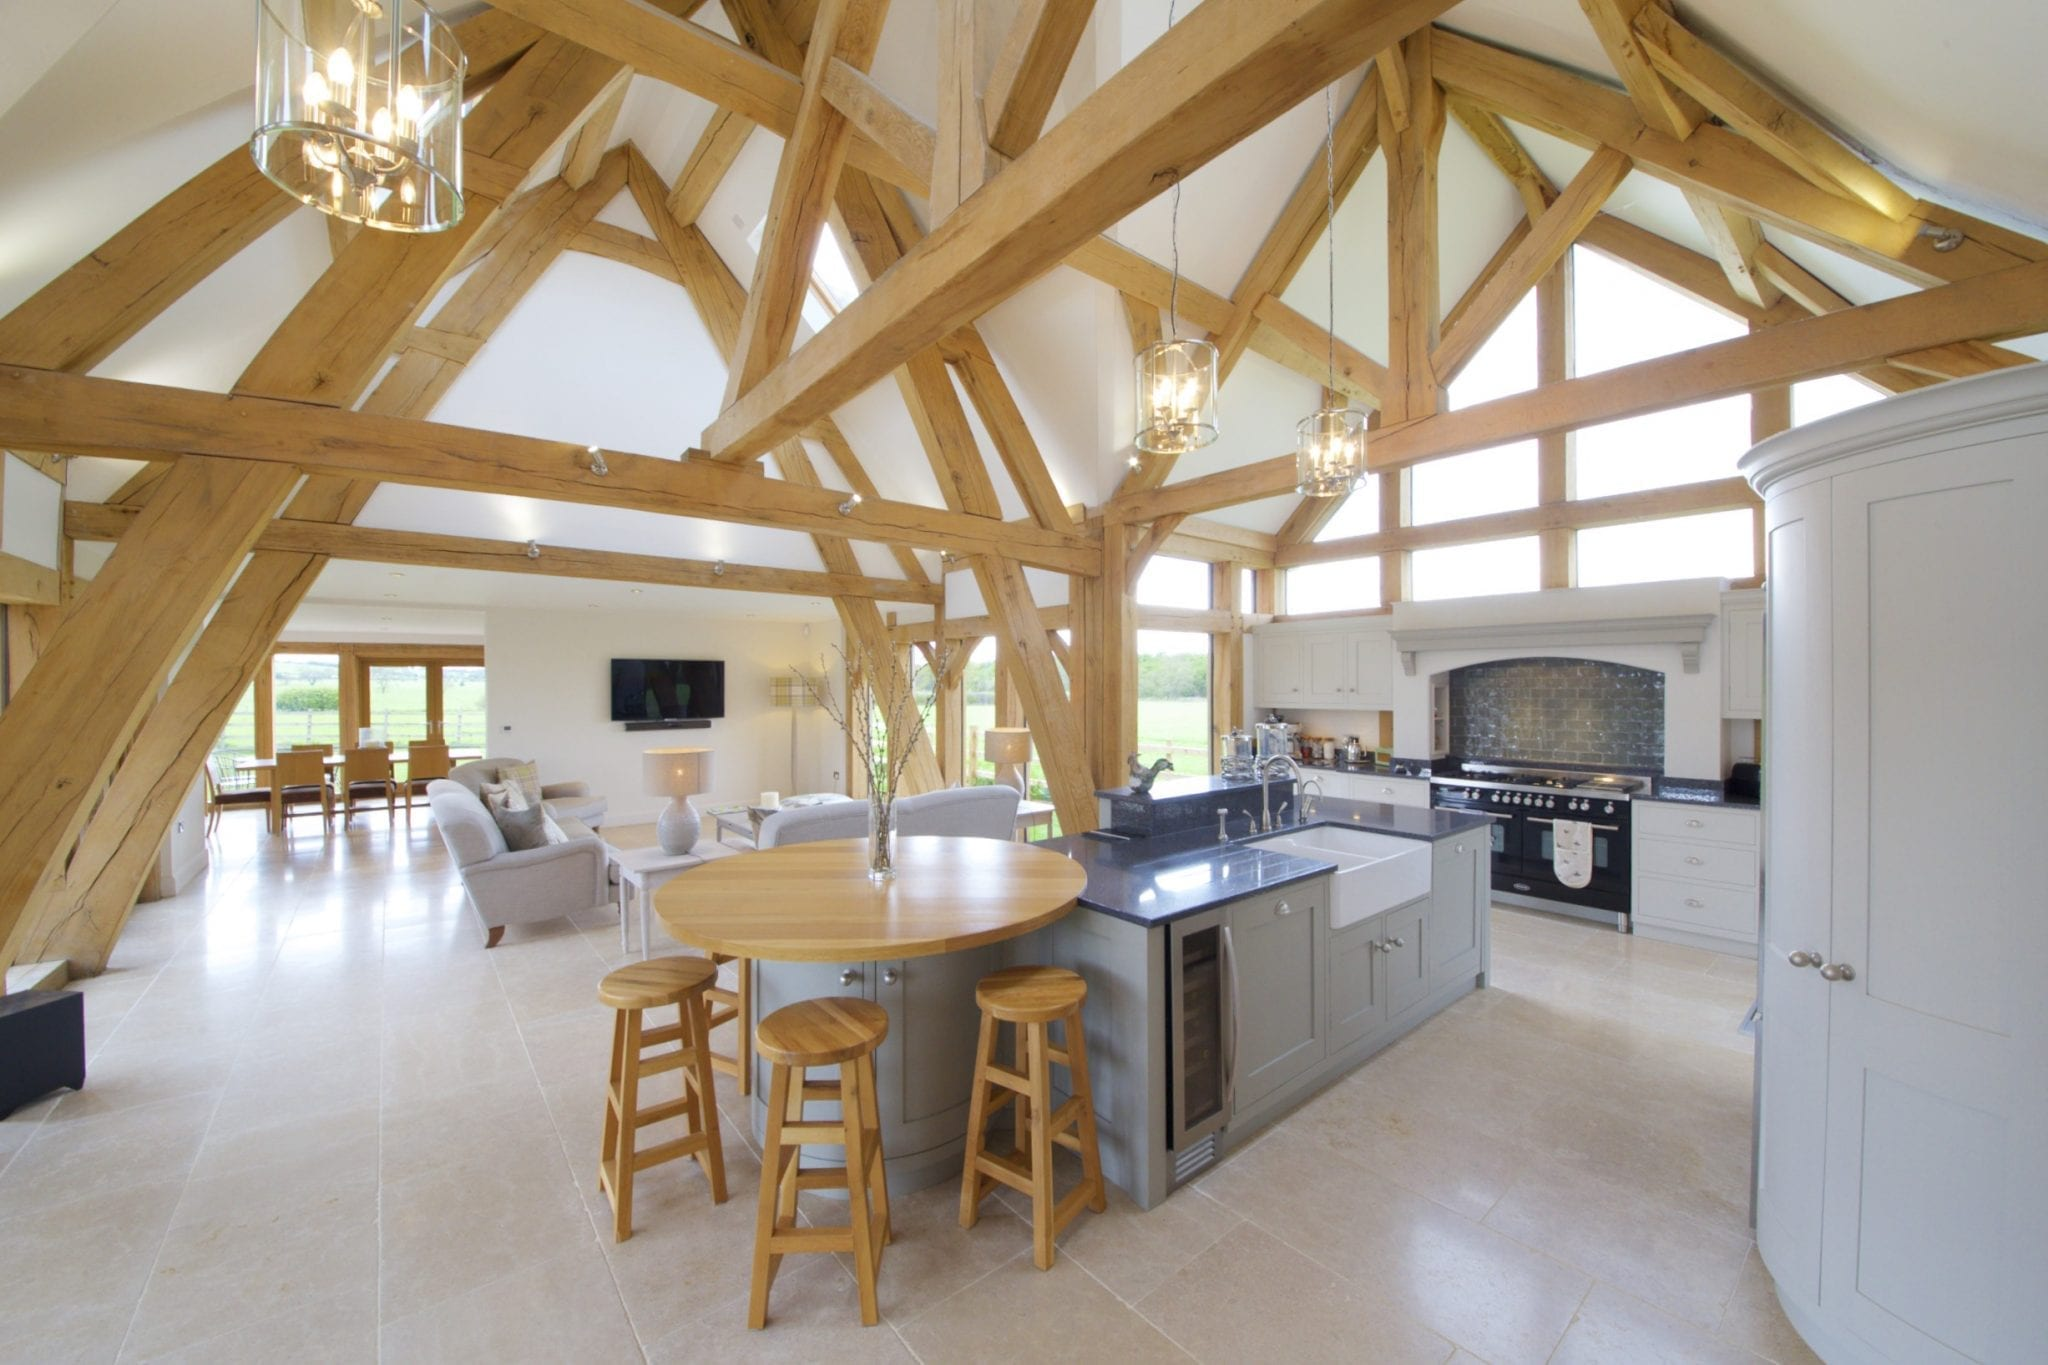 built in kitchen seating tables round oak framed kitchen, dining and garden room extension to ...